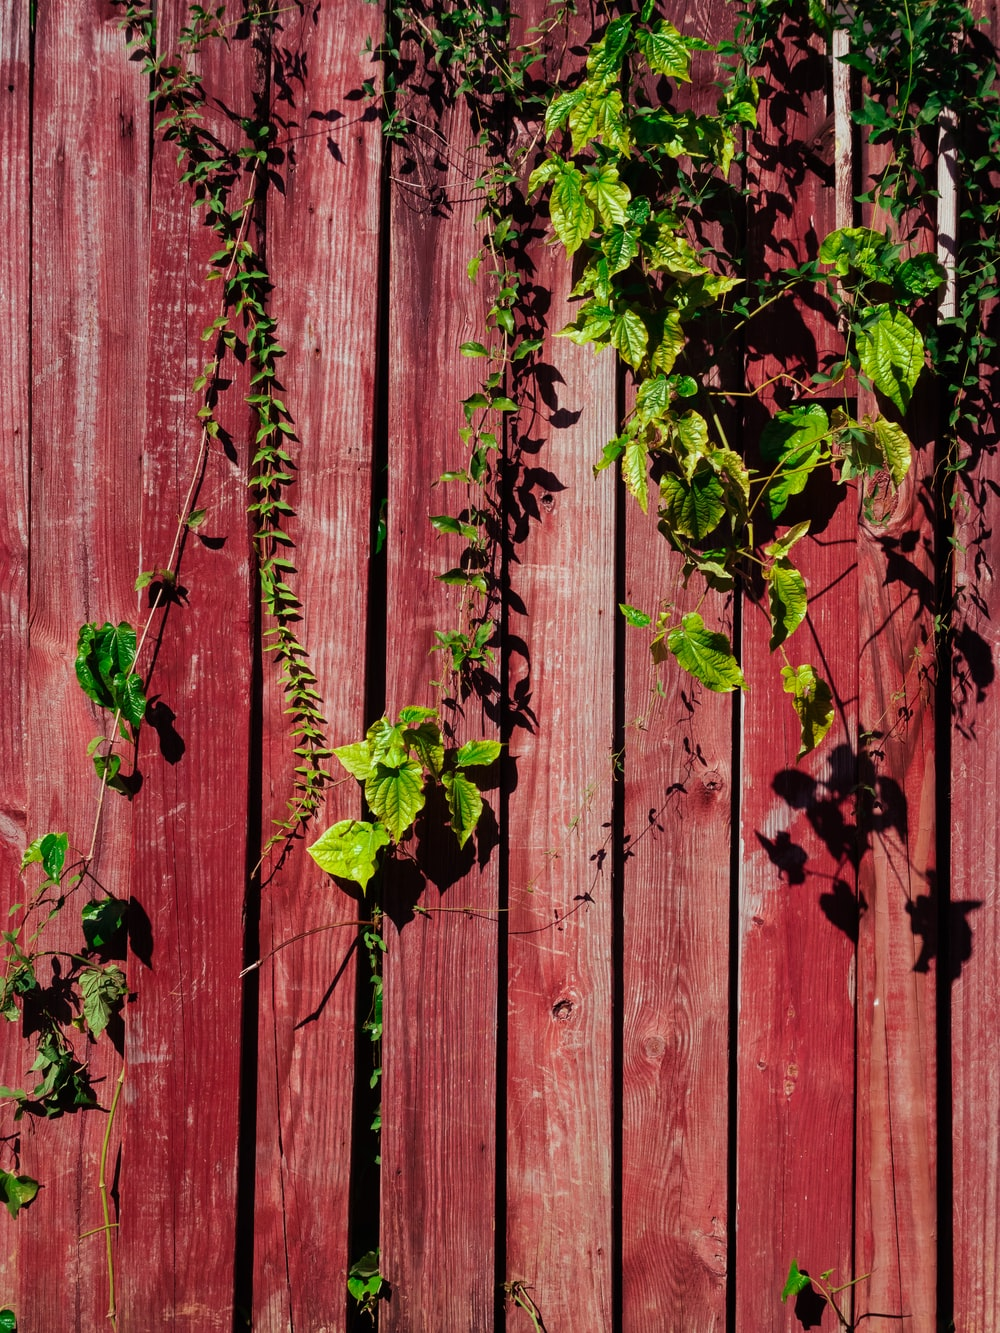 green-leaf plants on fence